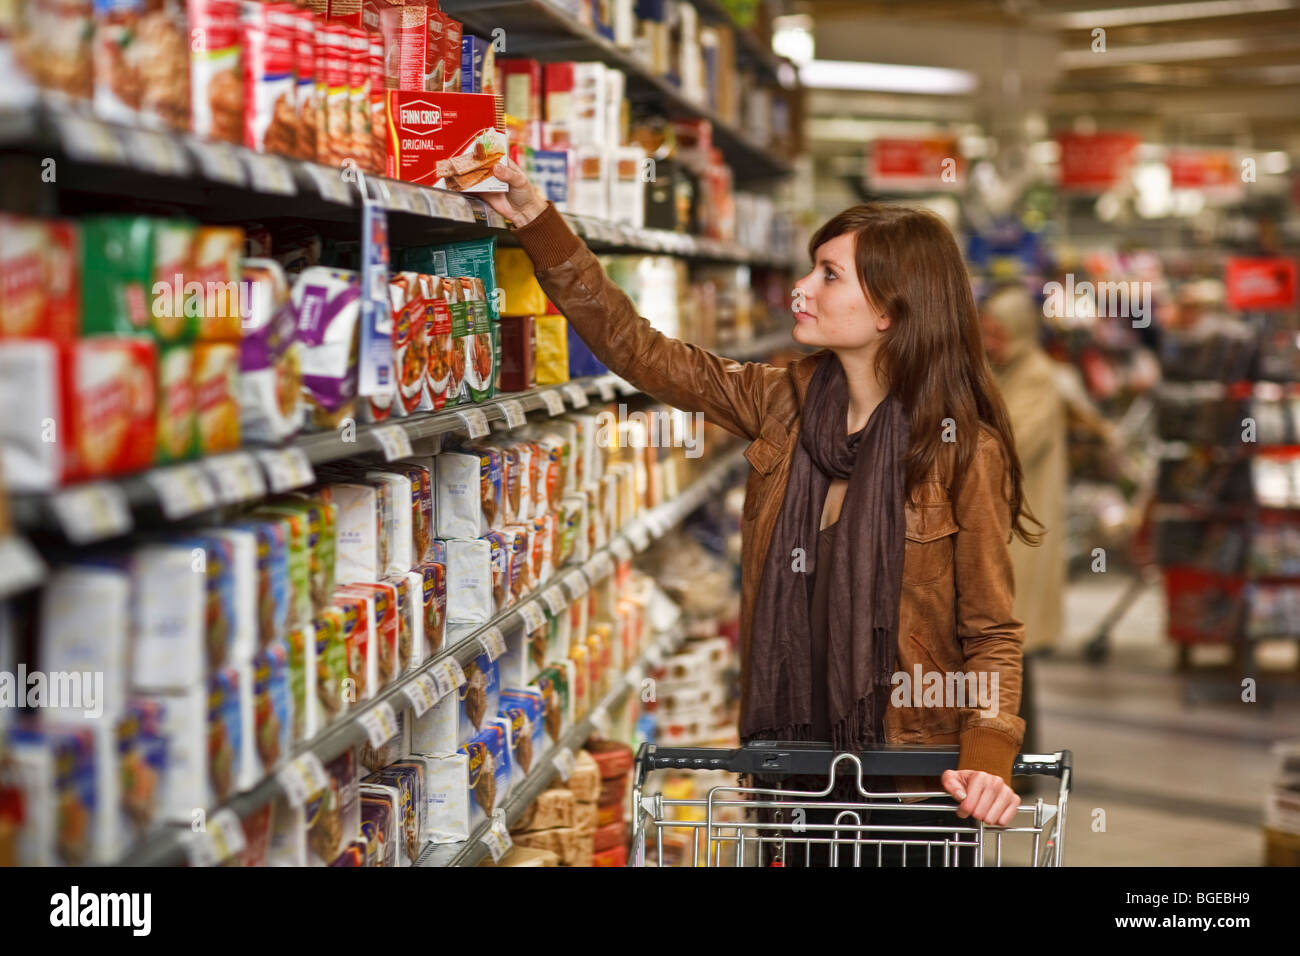 A woman in a grocery store grabbing a packet of crackers off the shelf. - Stock Image